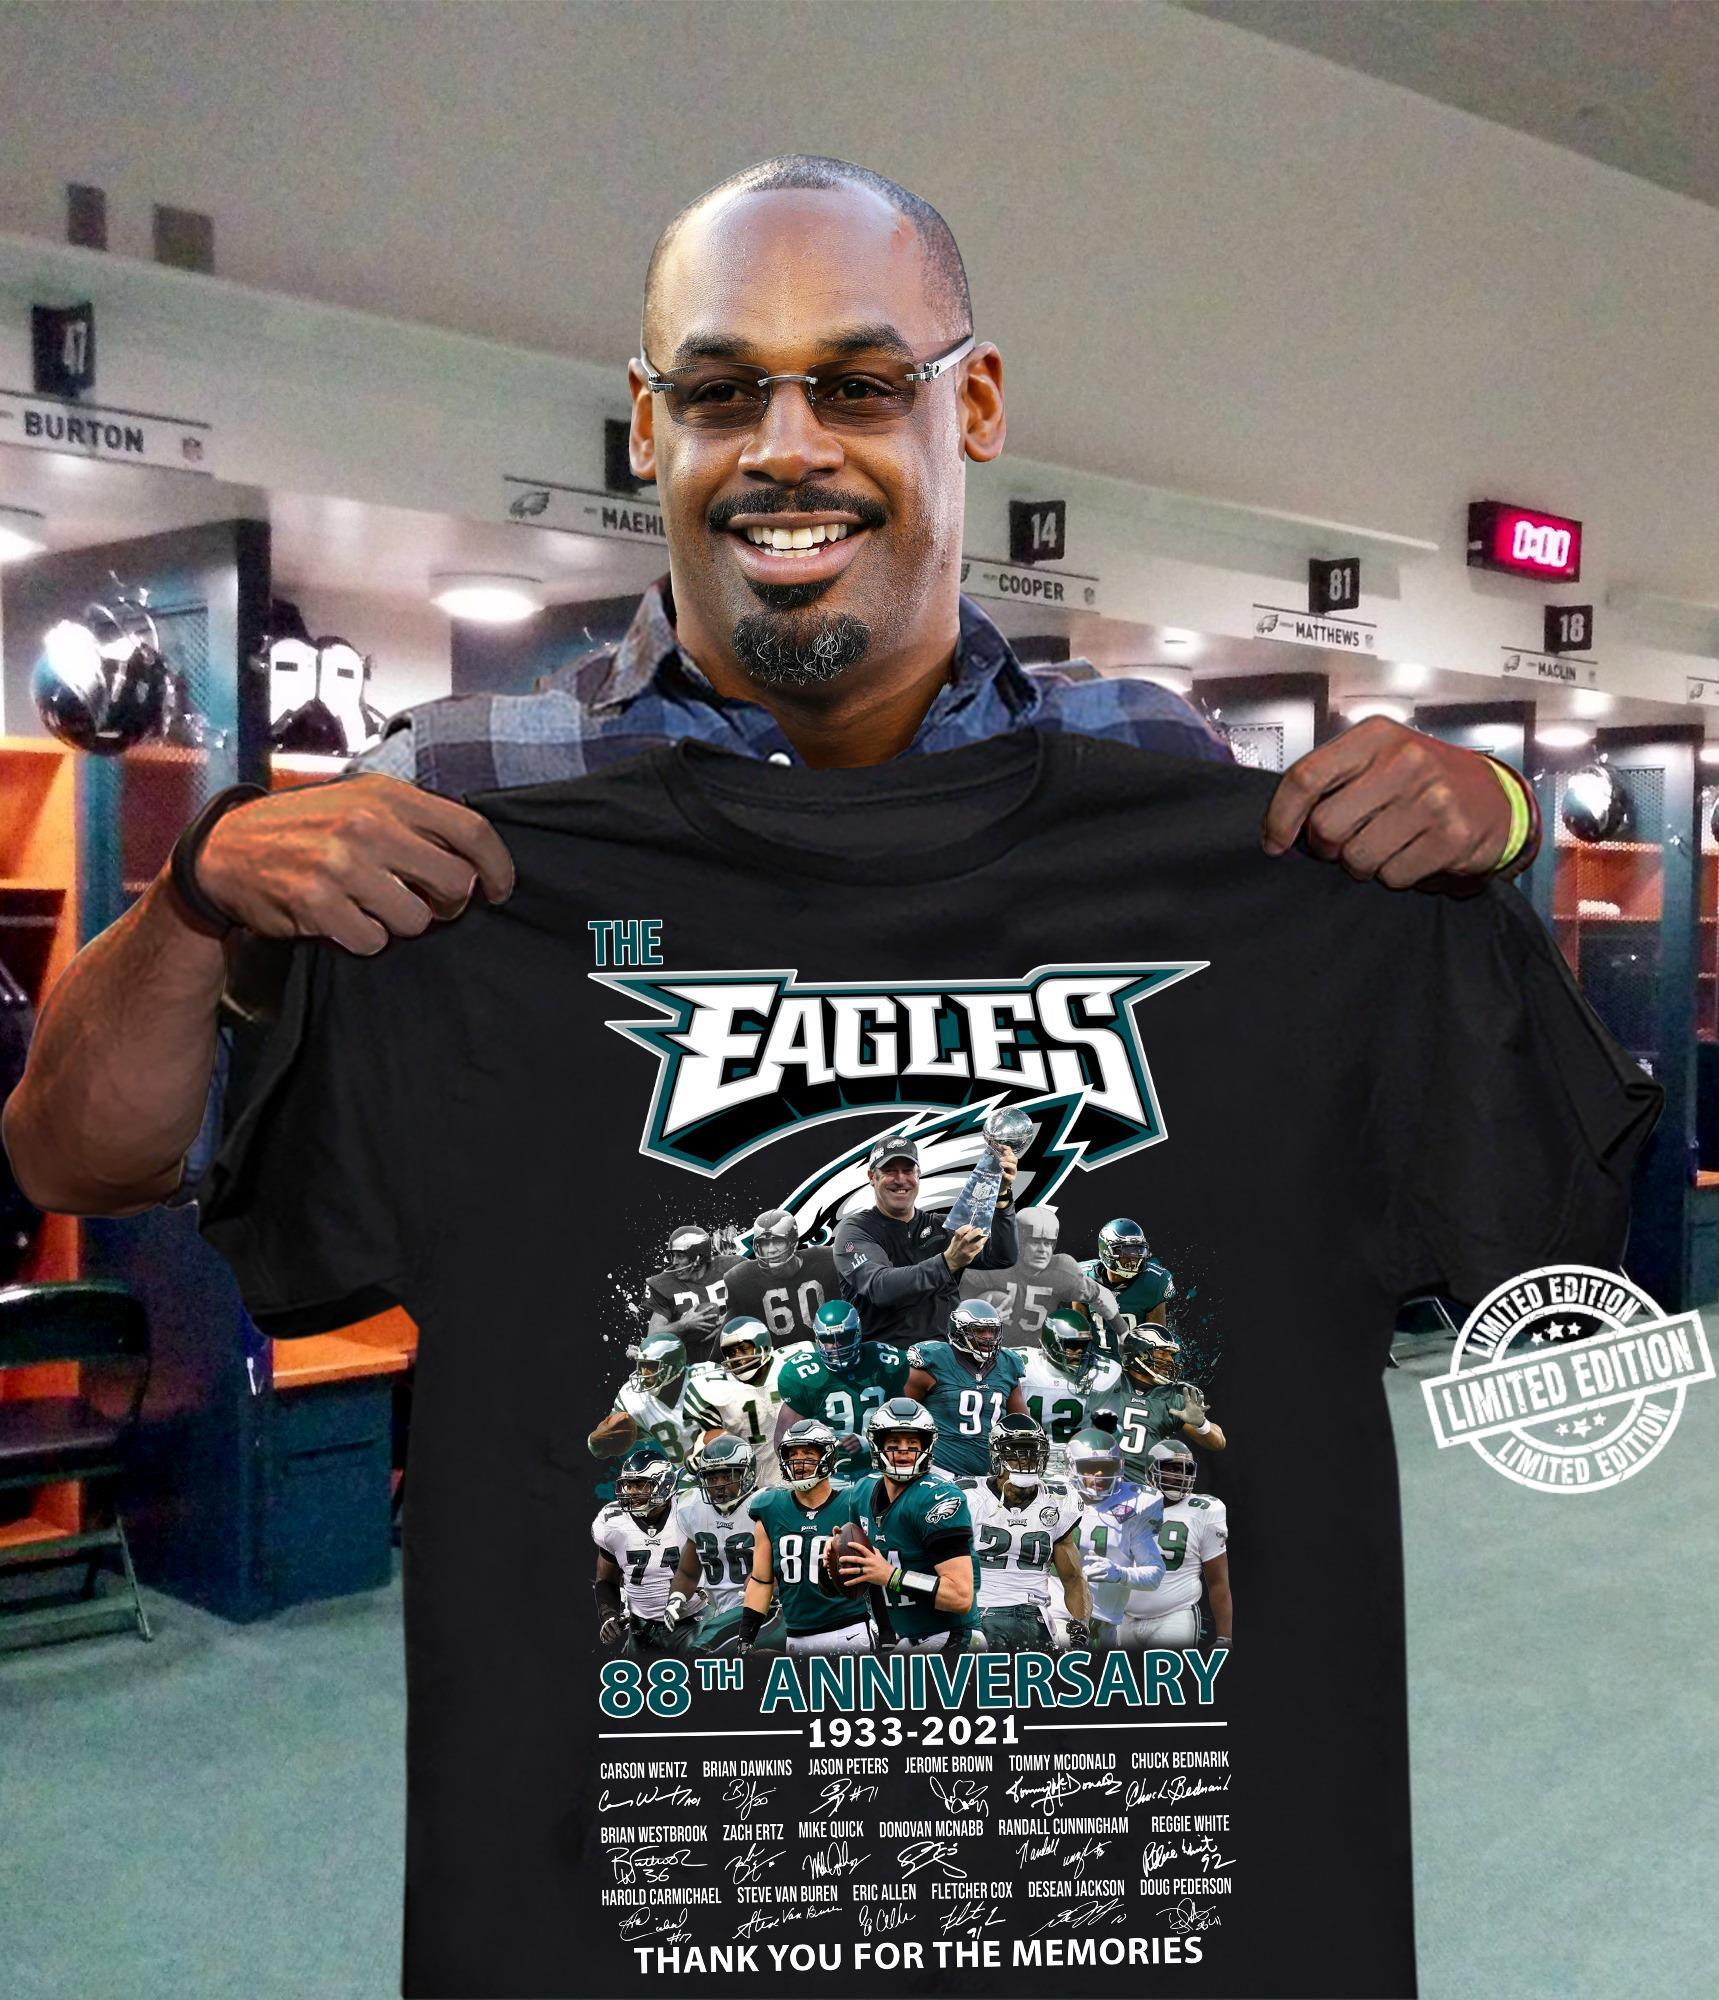 The Eagles 88th anniversary 1933-2021 thank you for the memories shirt